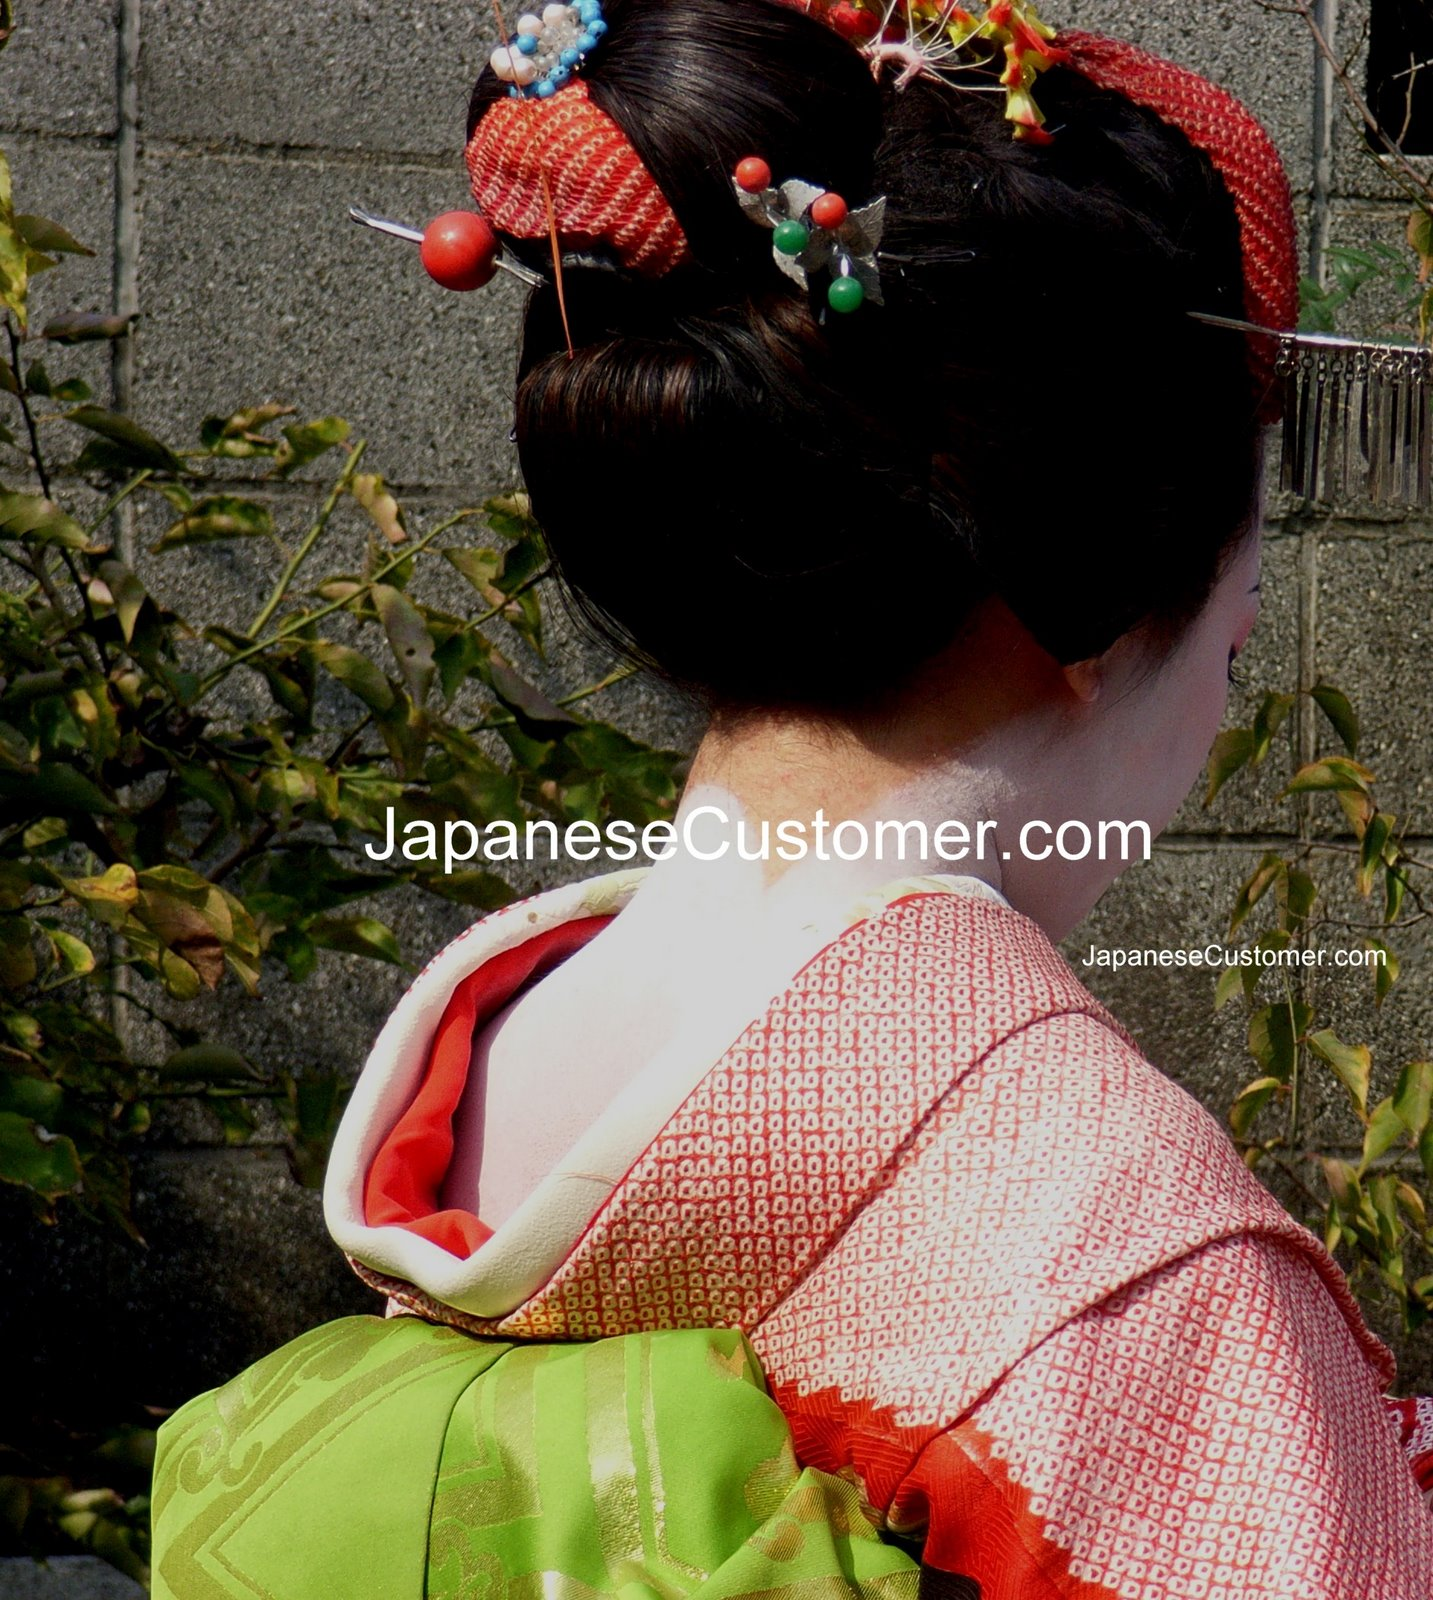 Maiko in Kyoto Copyright Peter Hanami 2014